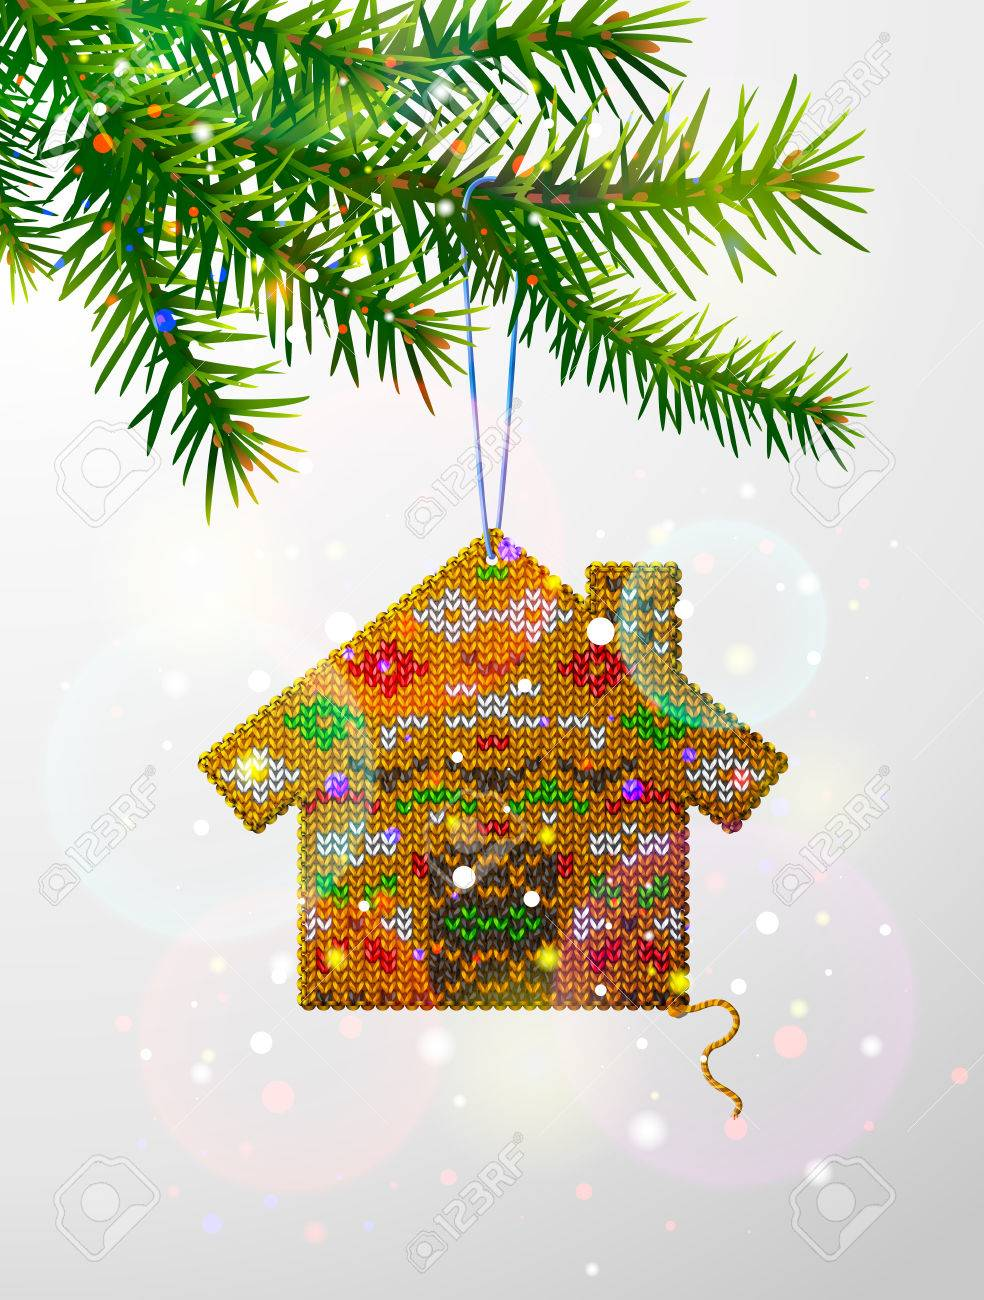 Pine Branches For Decoration Christmas Tree Branch With Decorative Knitted House Home Of